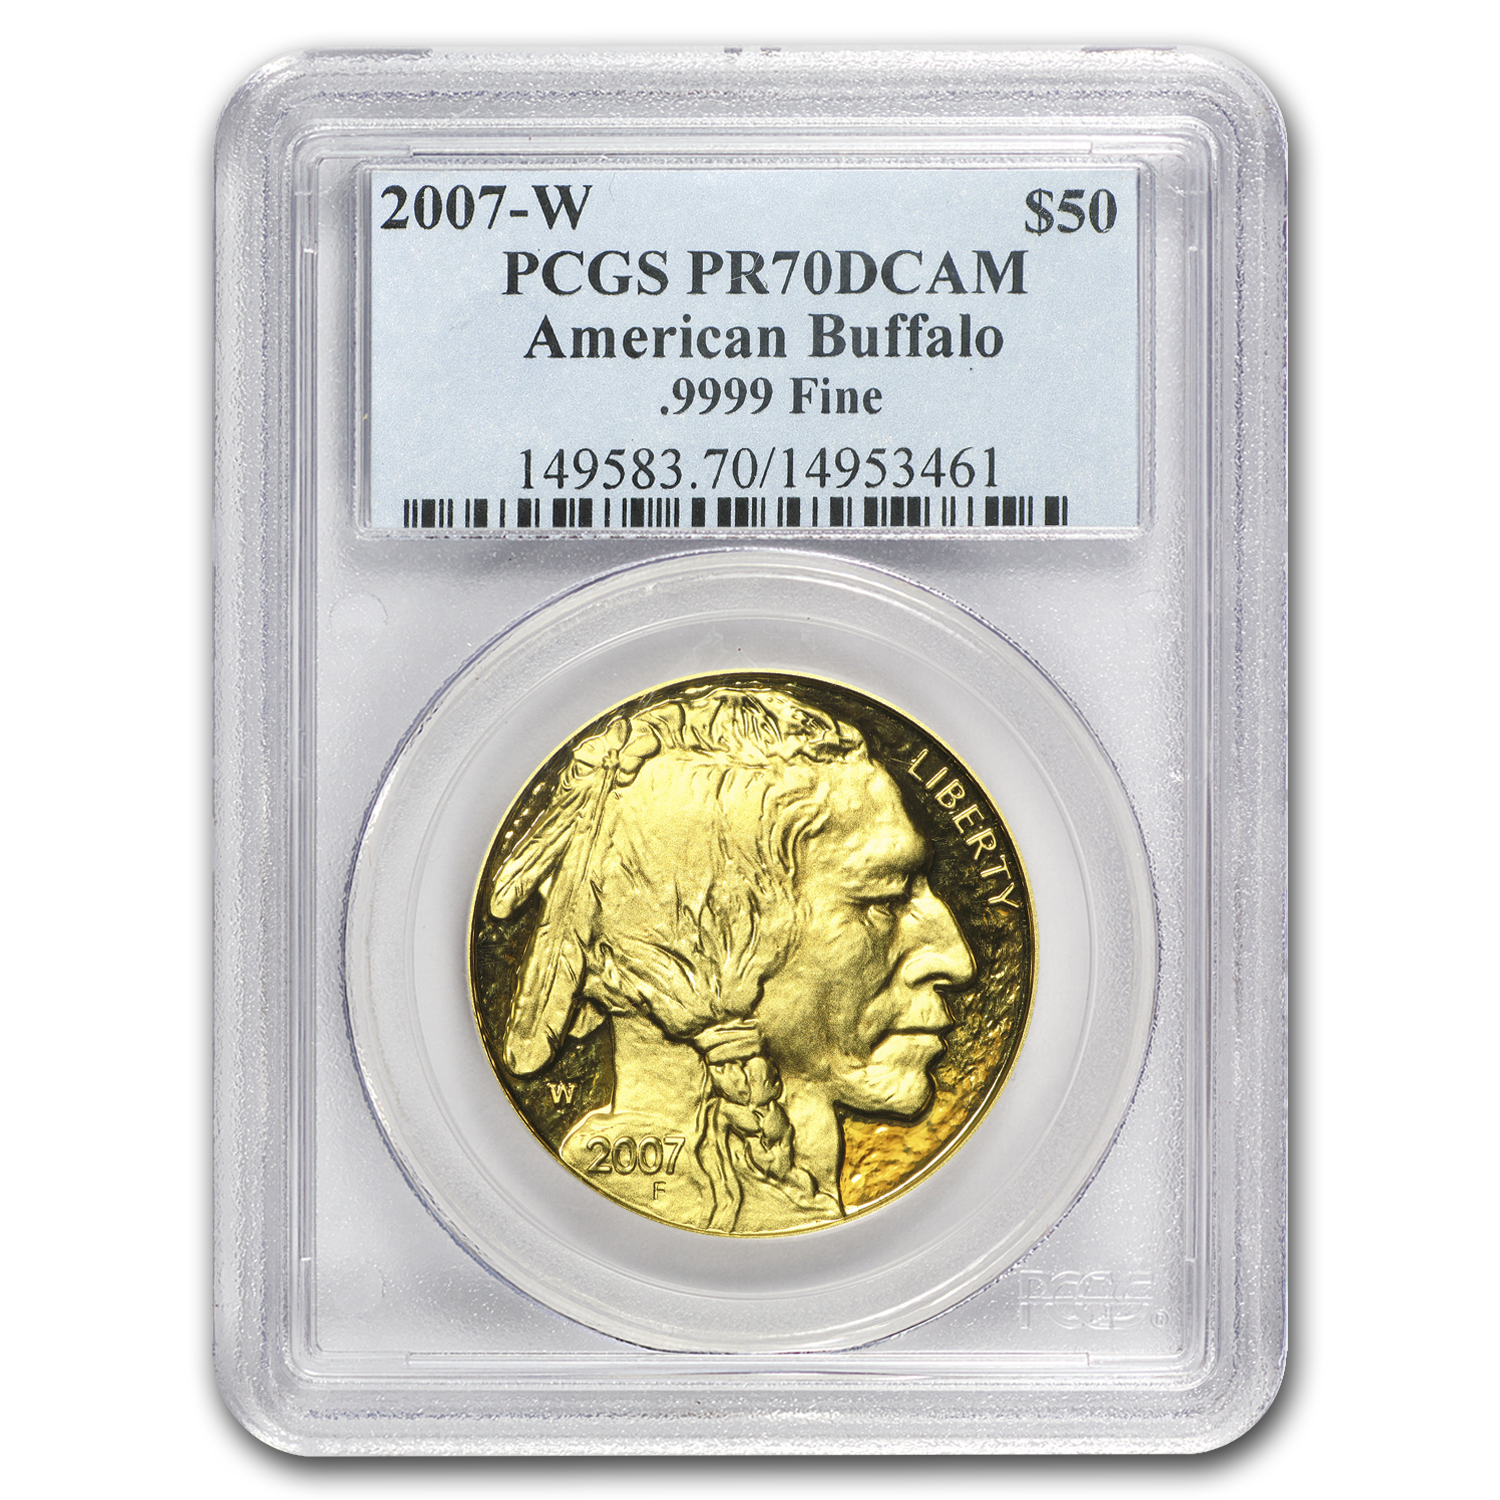 2007-W 1 oz Proof Gold Buffalo PR-70 PCGS